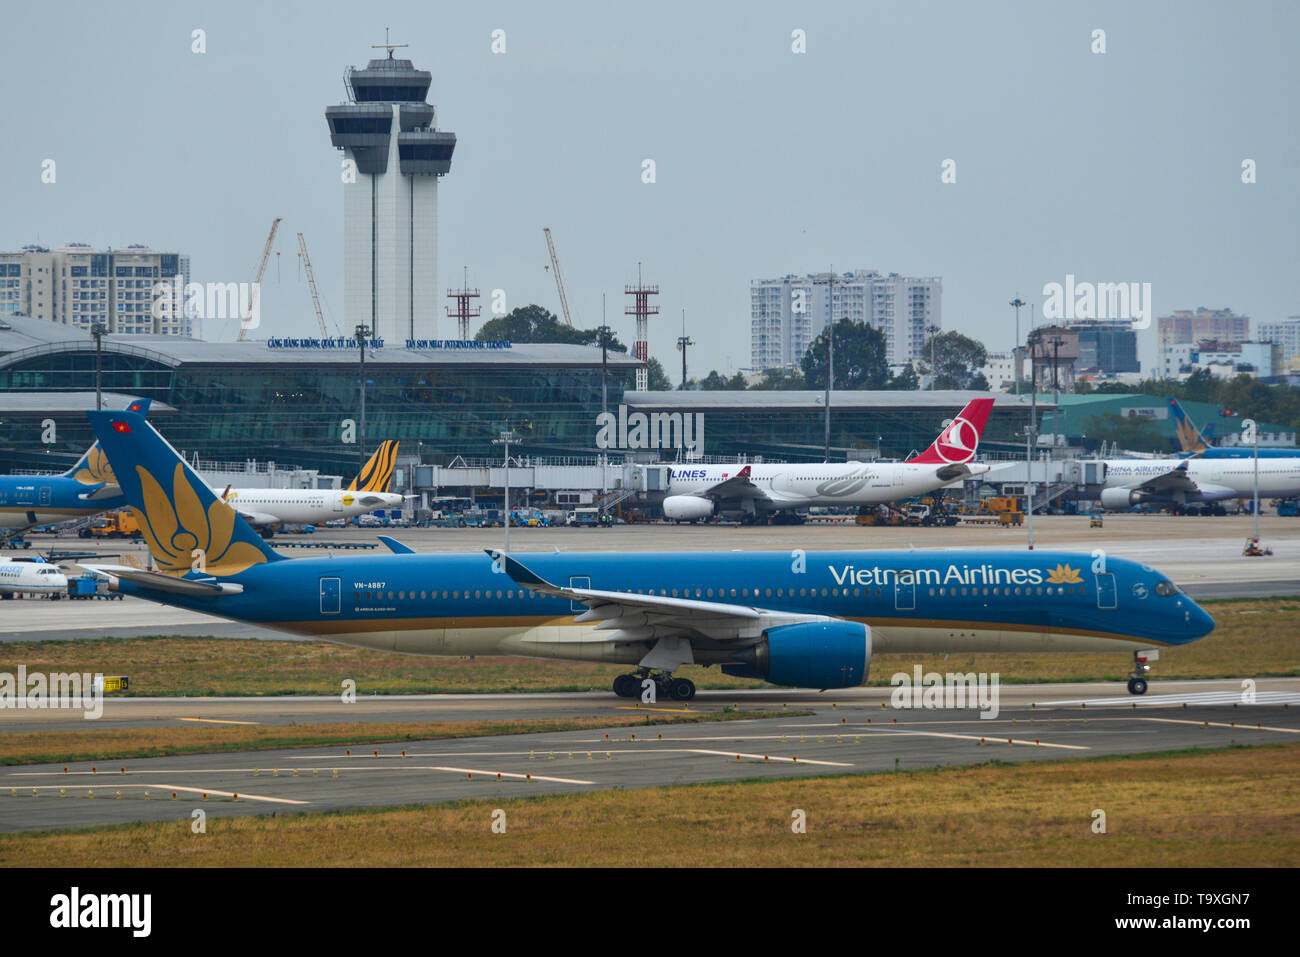 Saigon, Vietnam - Apr 23, 2019. VN-A887 Vietnam Airlines Airbus A350-900 taxiing on runway of Tan Son Nhat Airport (SGN). - Stock Image